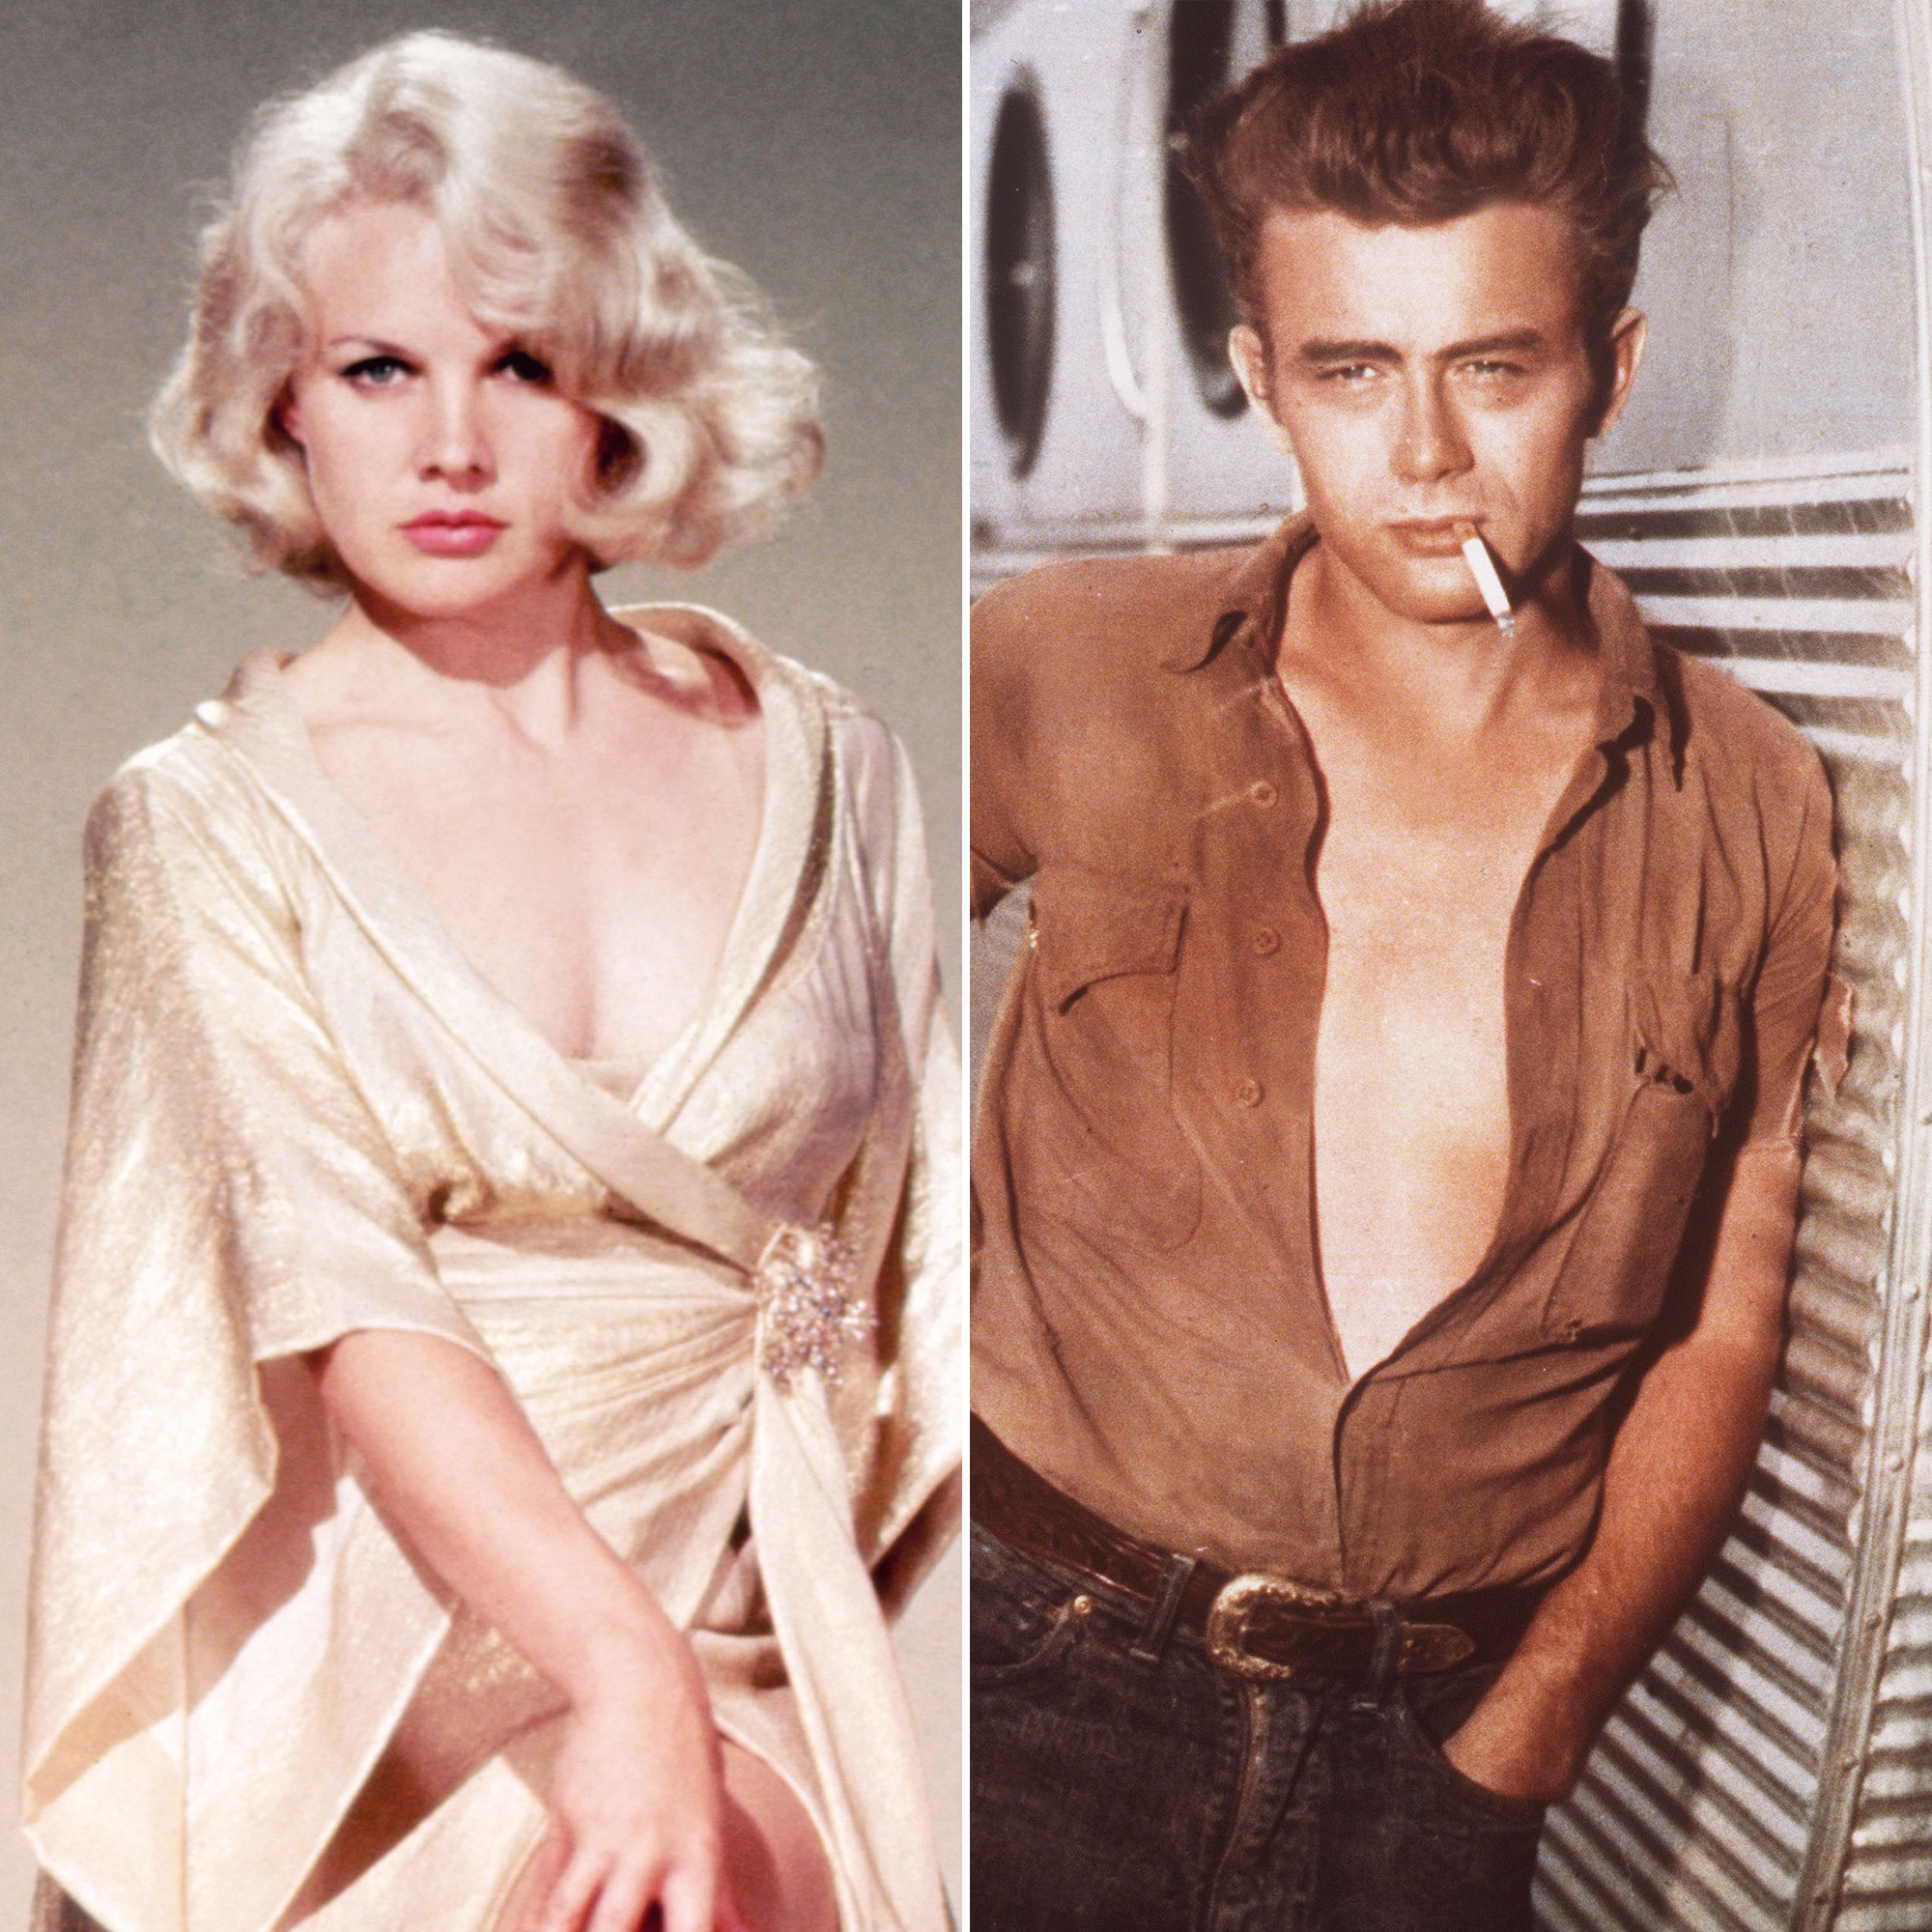 Carroll Baker Remembers The Moment She Learned Her Friend James Dean Had Tragically Died